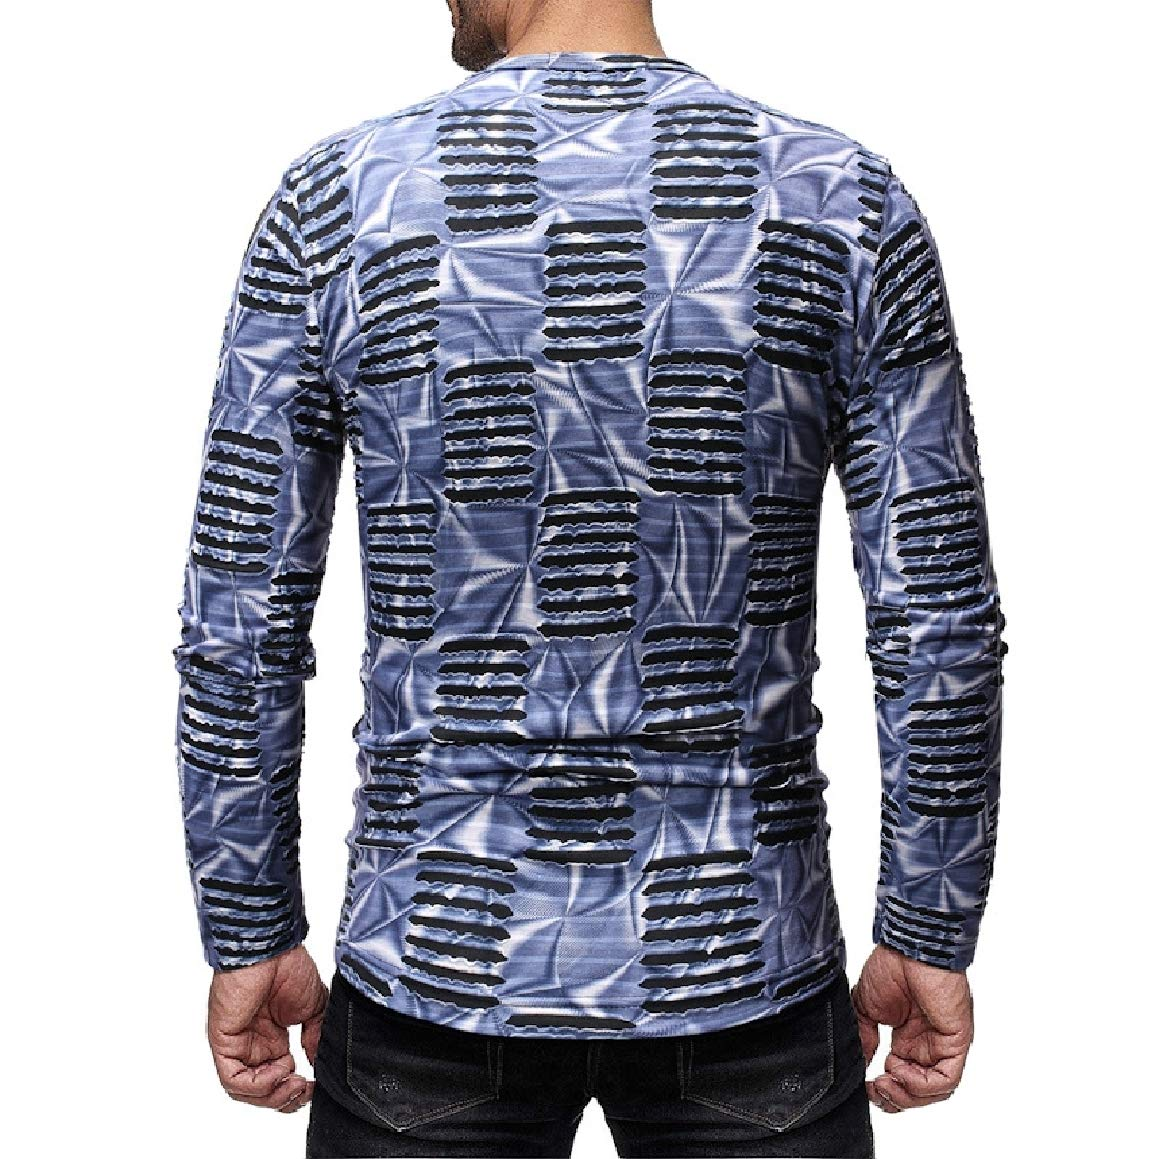 Abetteric Mens Solid Long Sleeve Classic Hip Hop Printing Chic Soft Tees Top